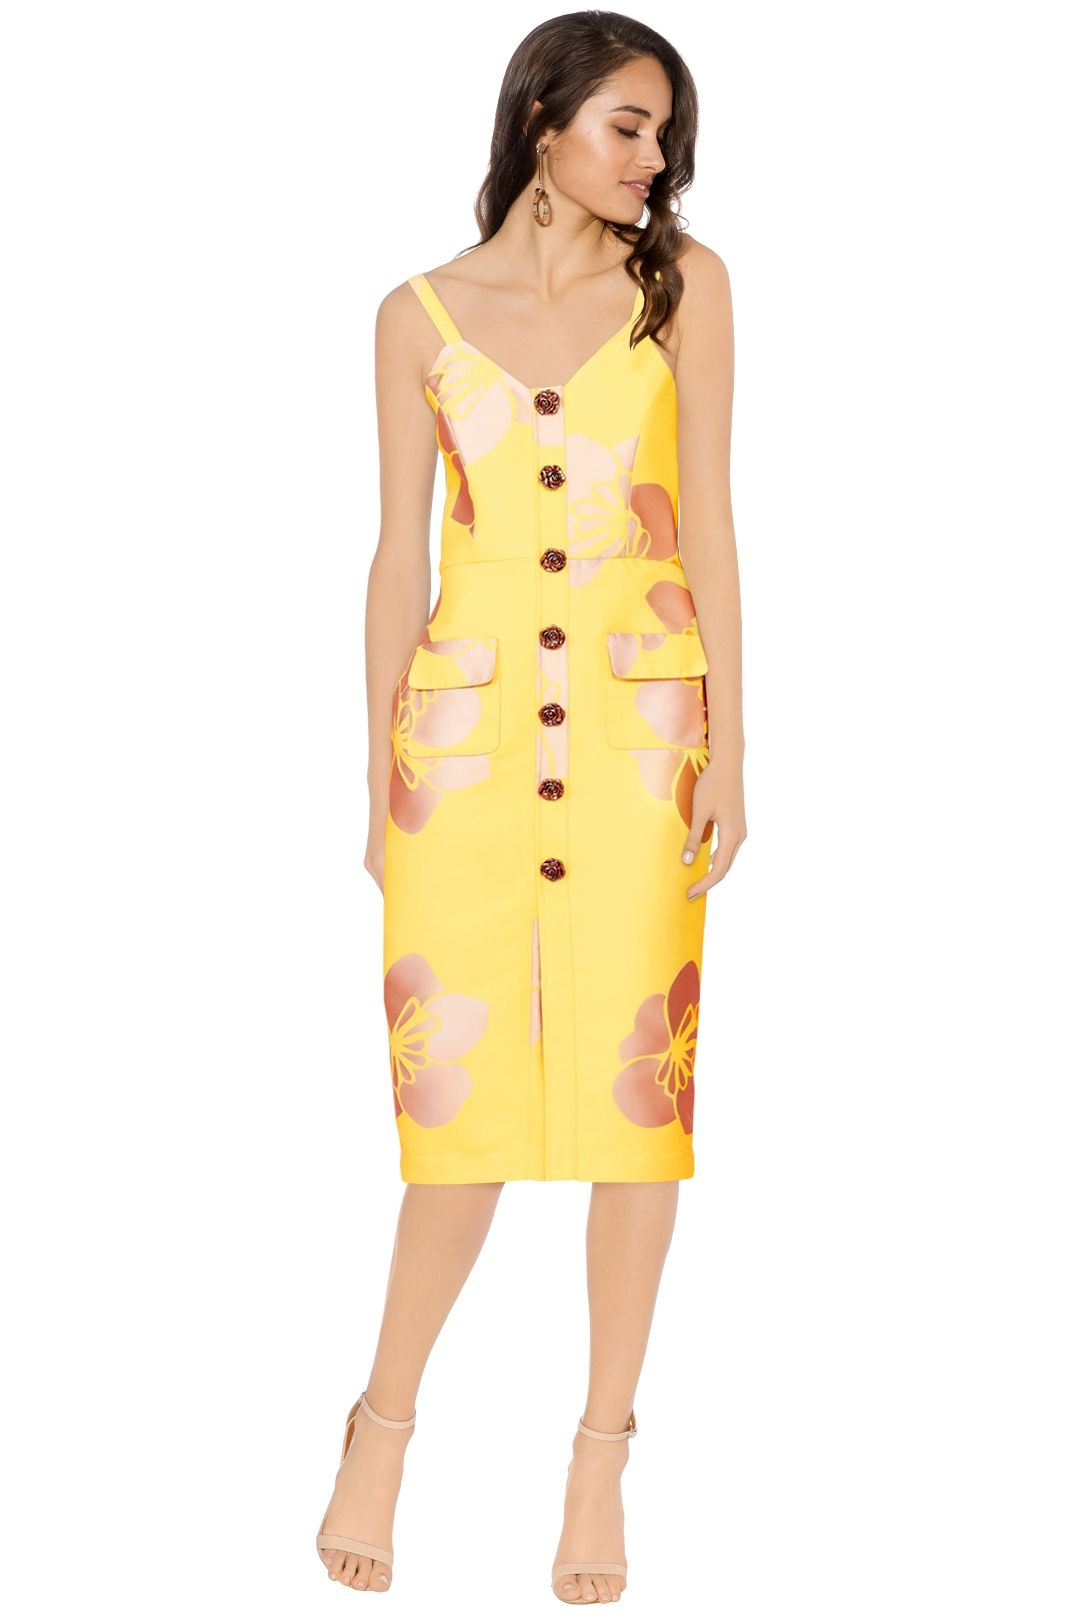 Trelise Cooper - A Bloom Of Ones Own Dress - Yellow - Front